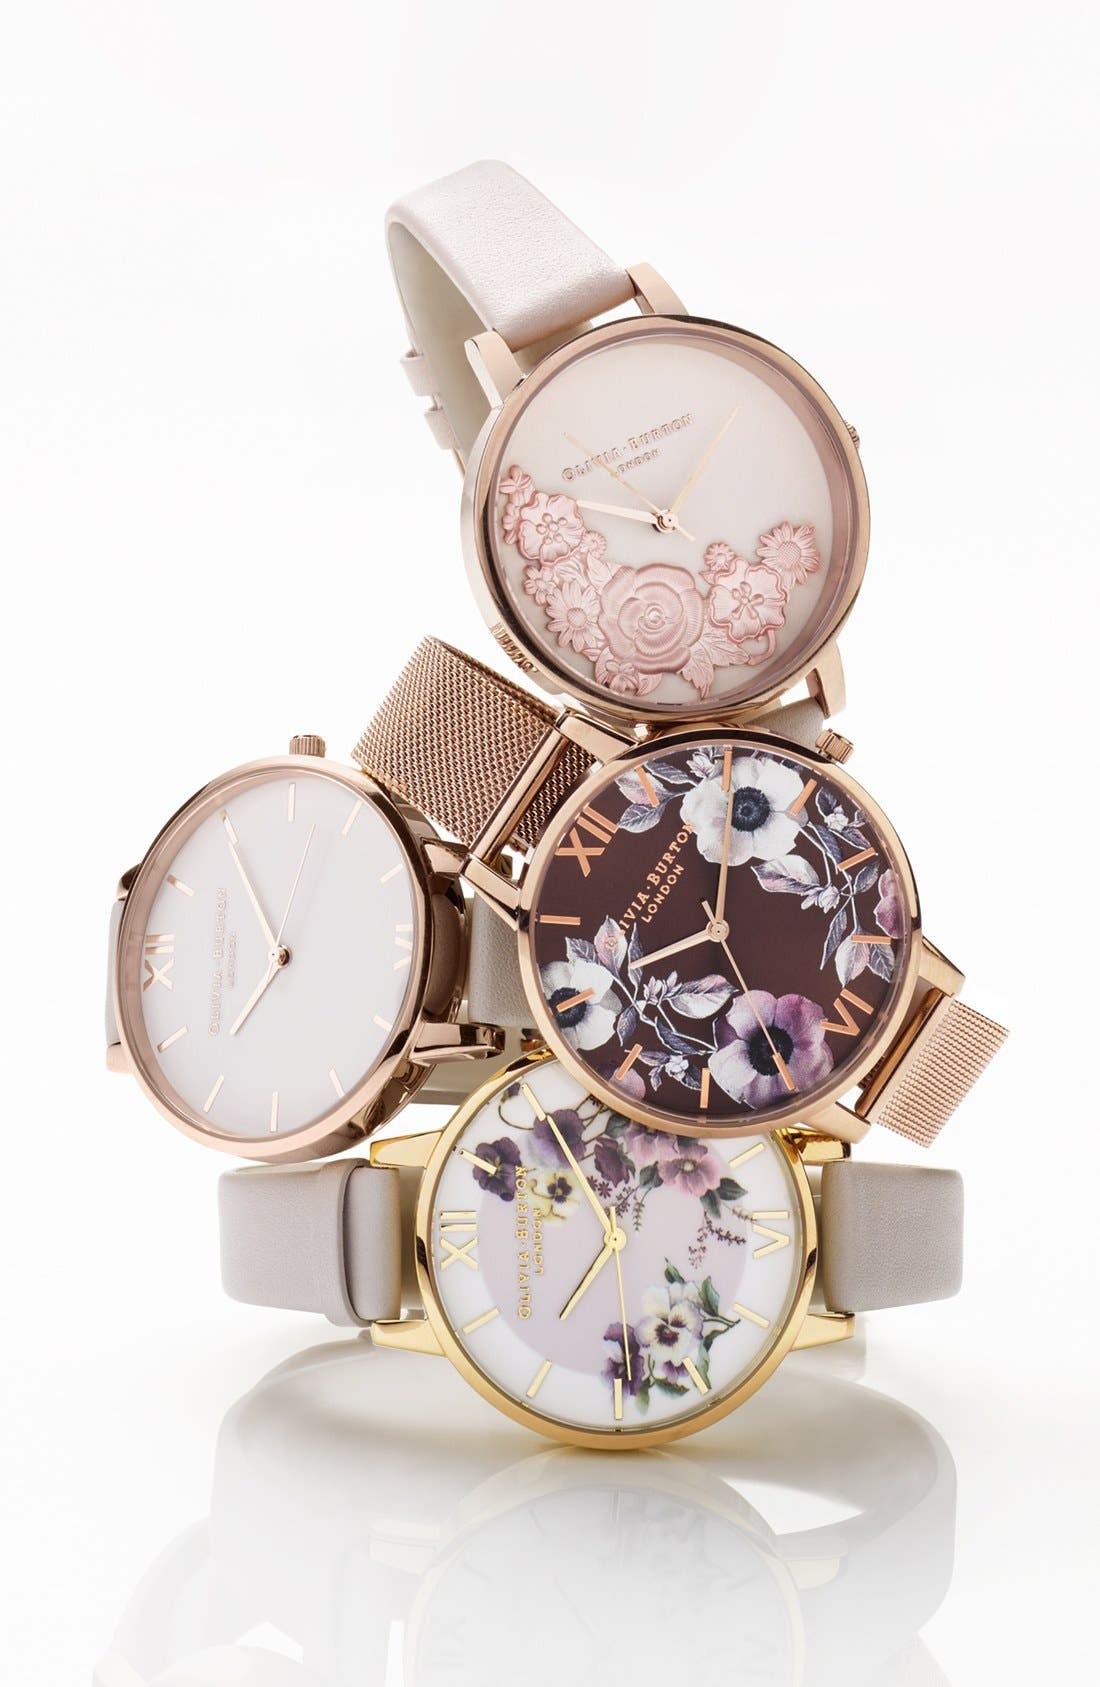 Begin to Blush Leather Strap Watch, 38mm,                             Alternate thumbnail 6, color,                             650